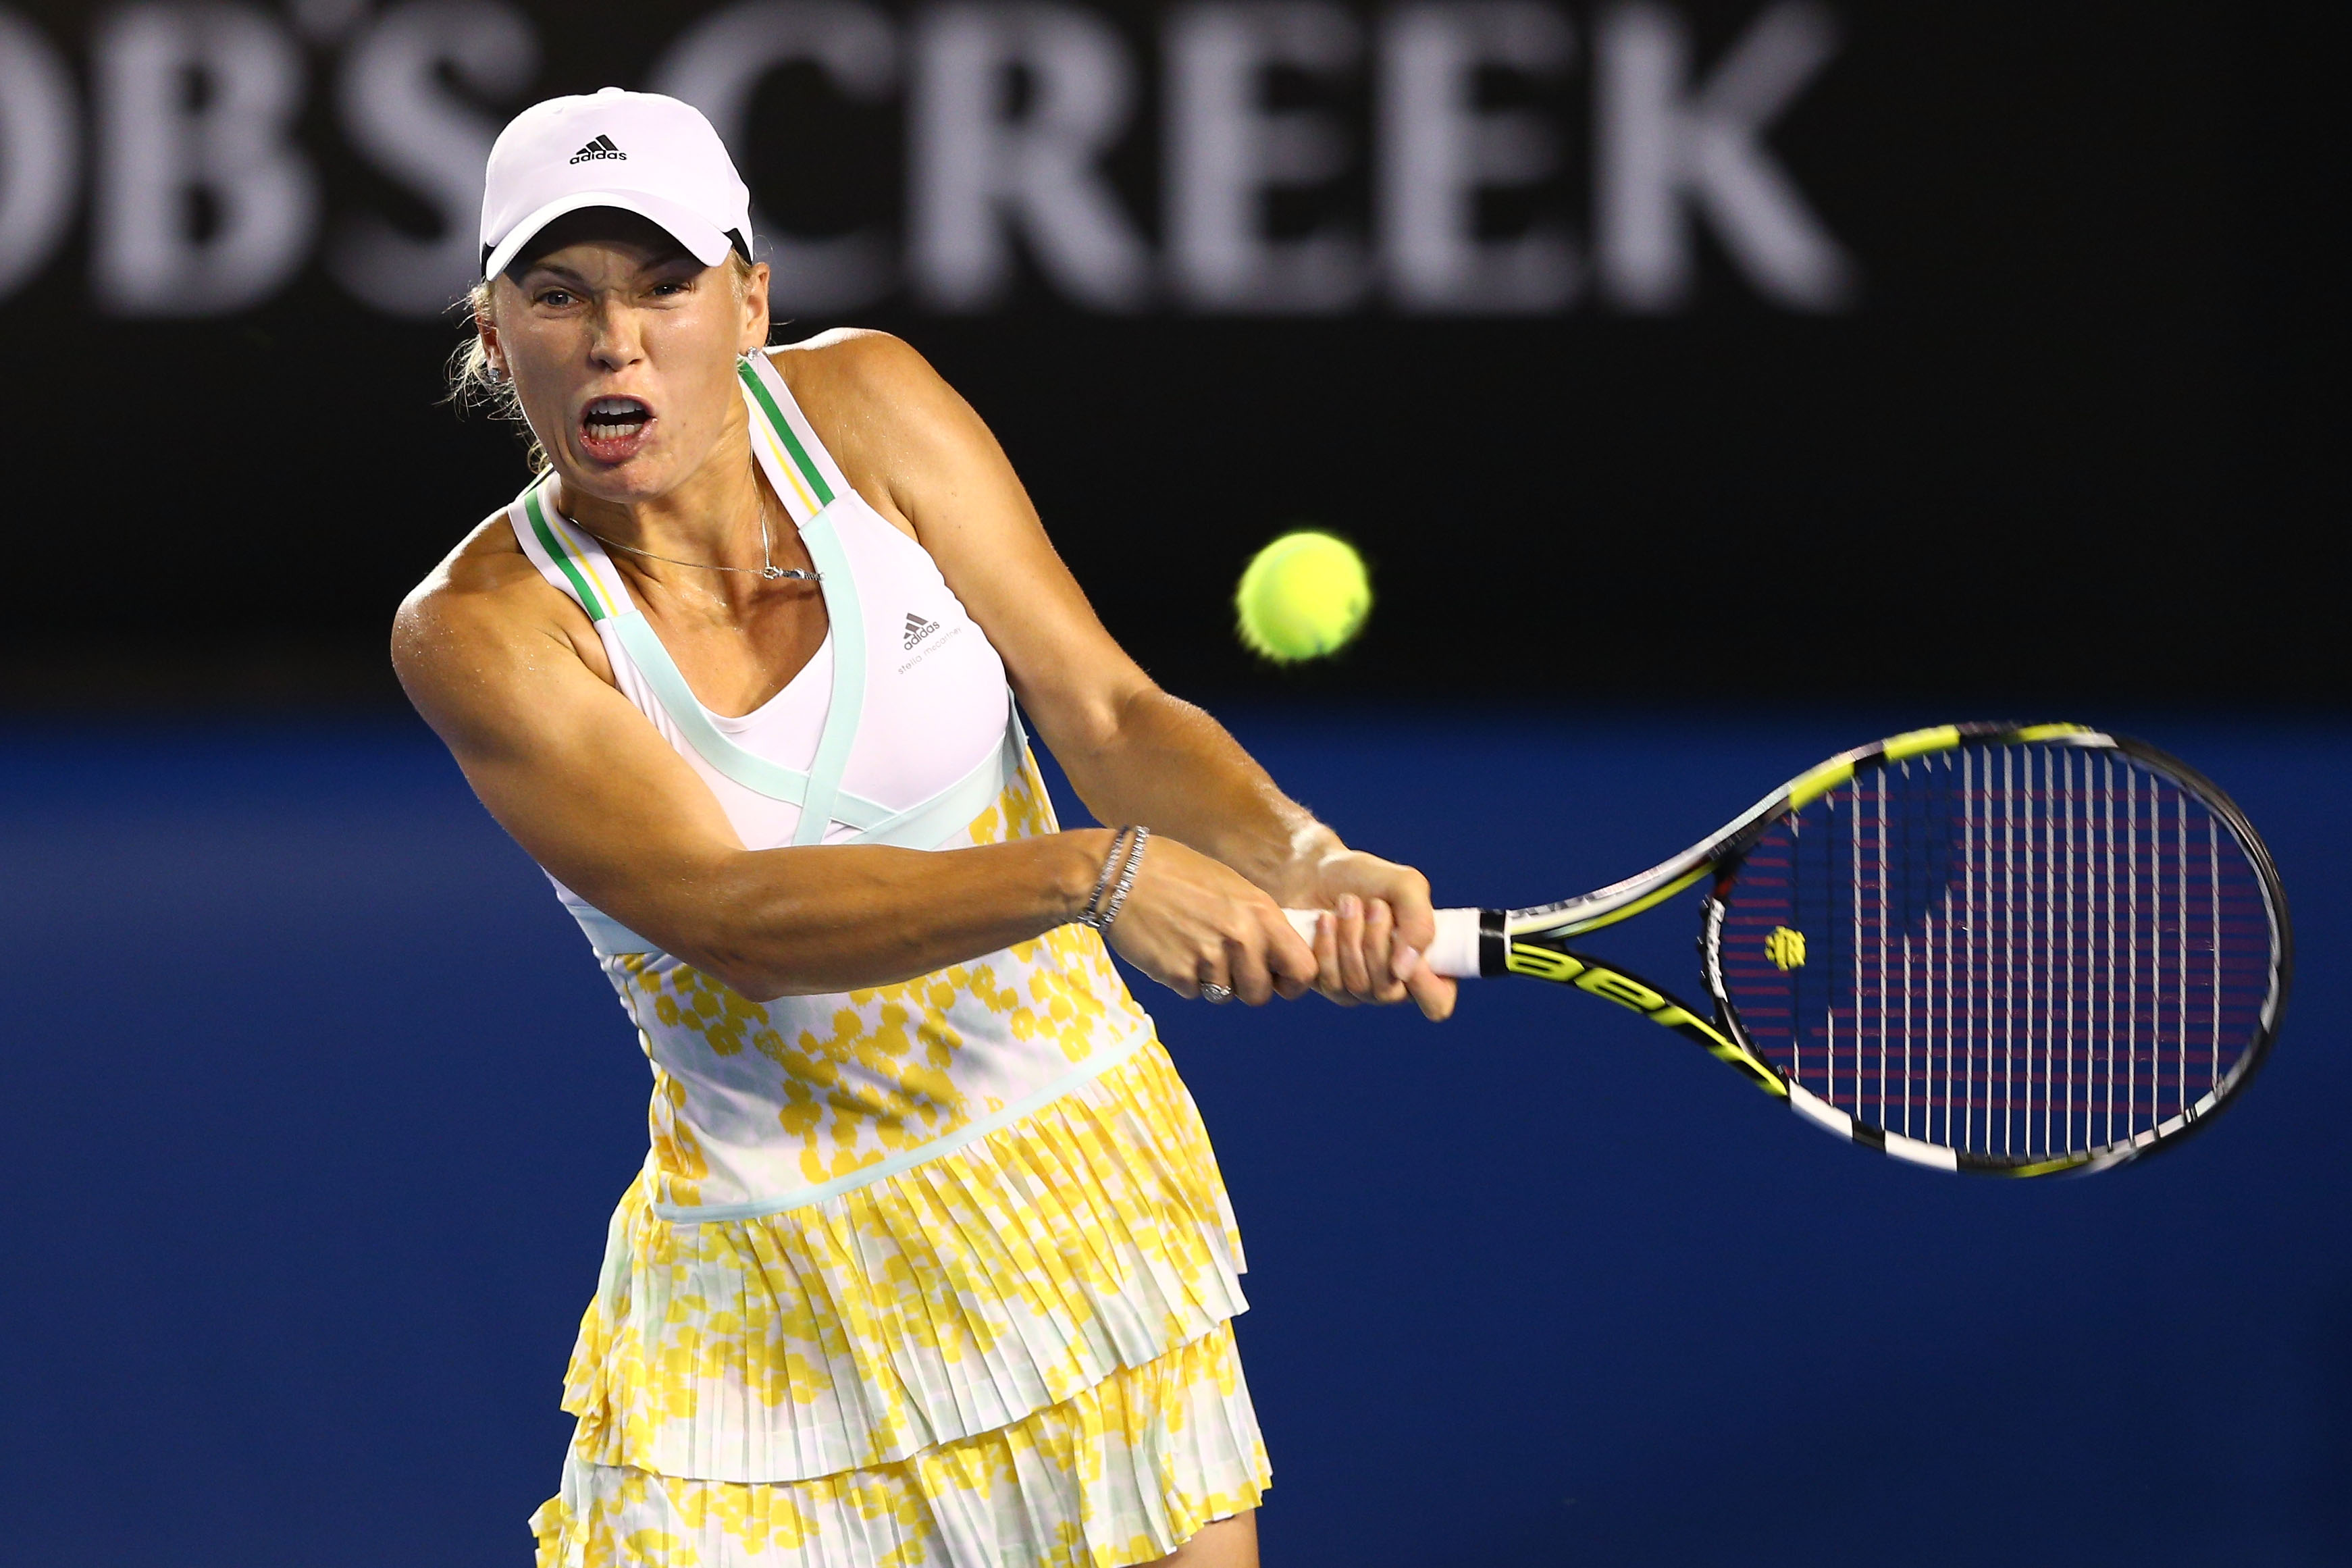 Adidas donned Wozniacki in tea towel -- and it worked -- at Australian Open.